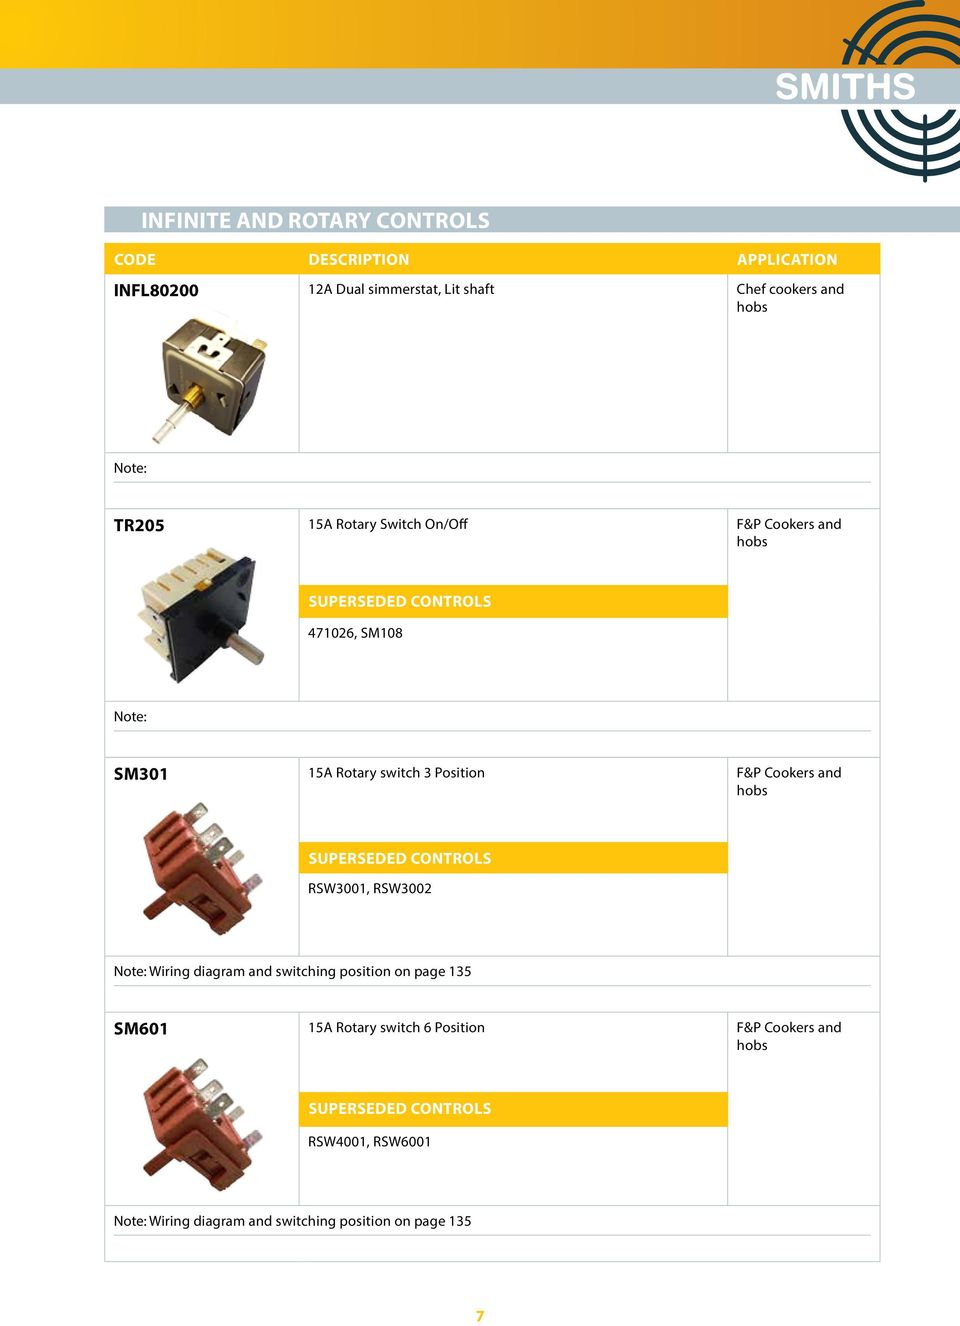 smith elements and controls - pdf, Wiring diagram